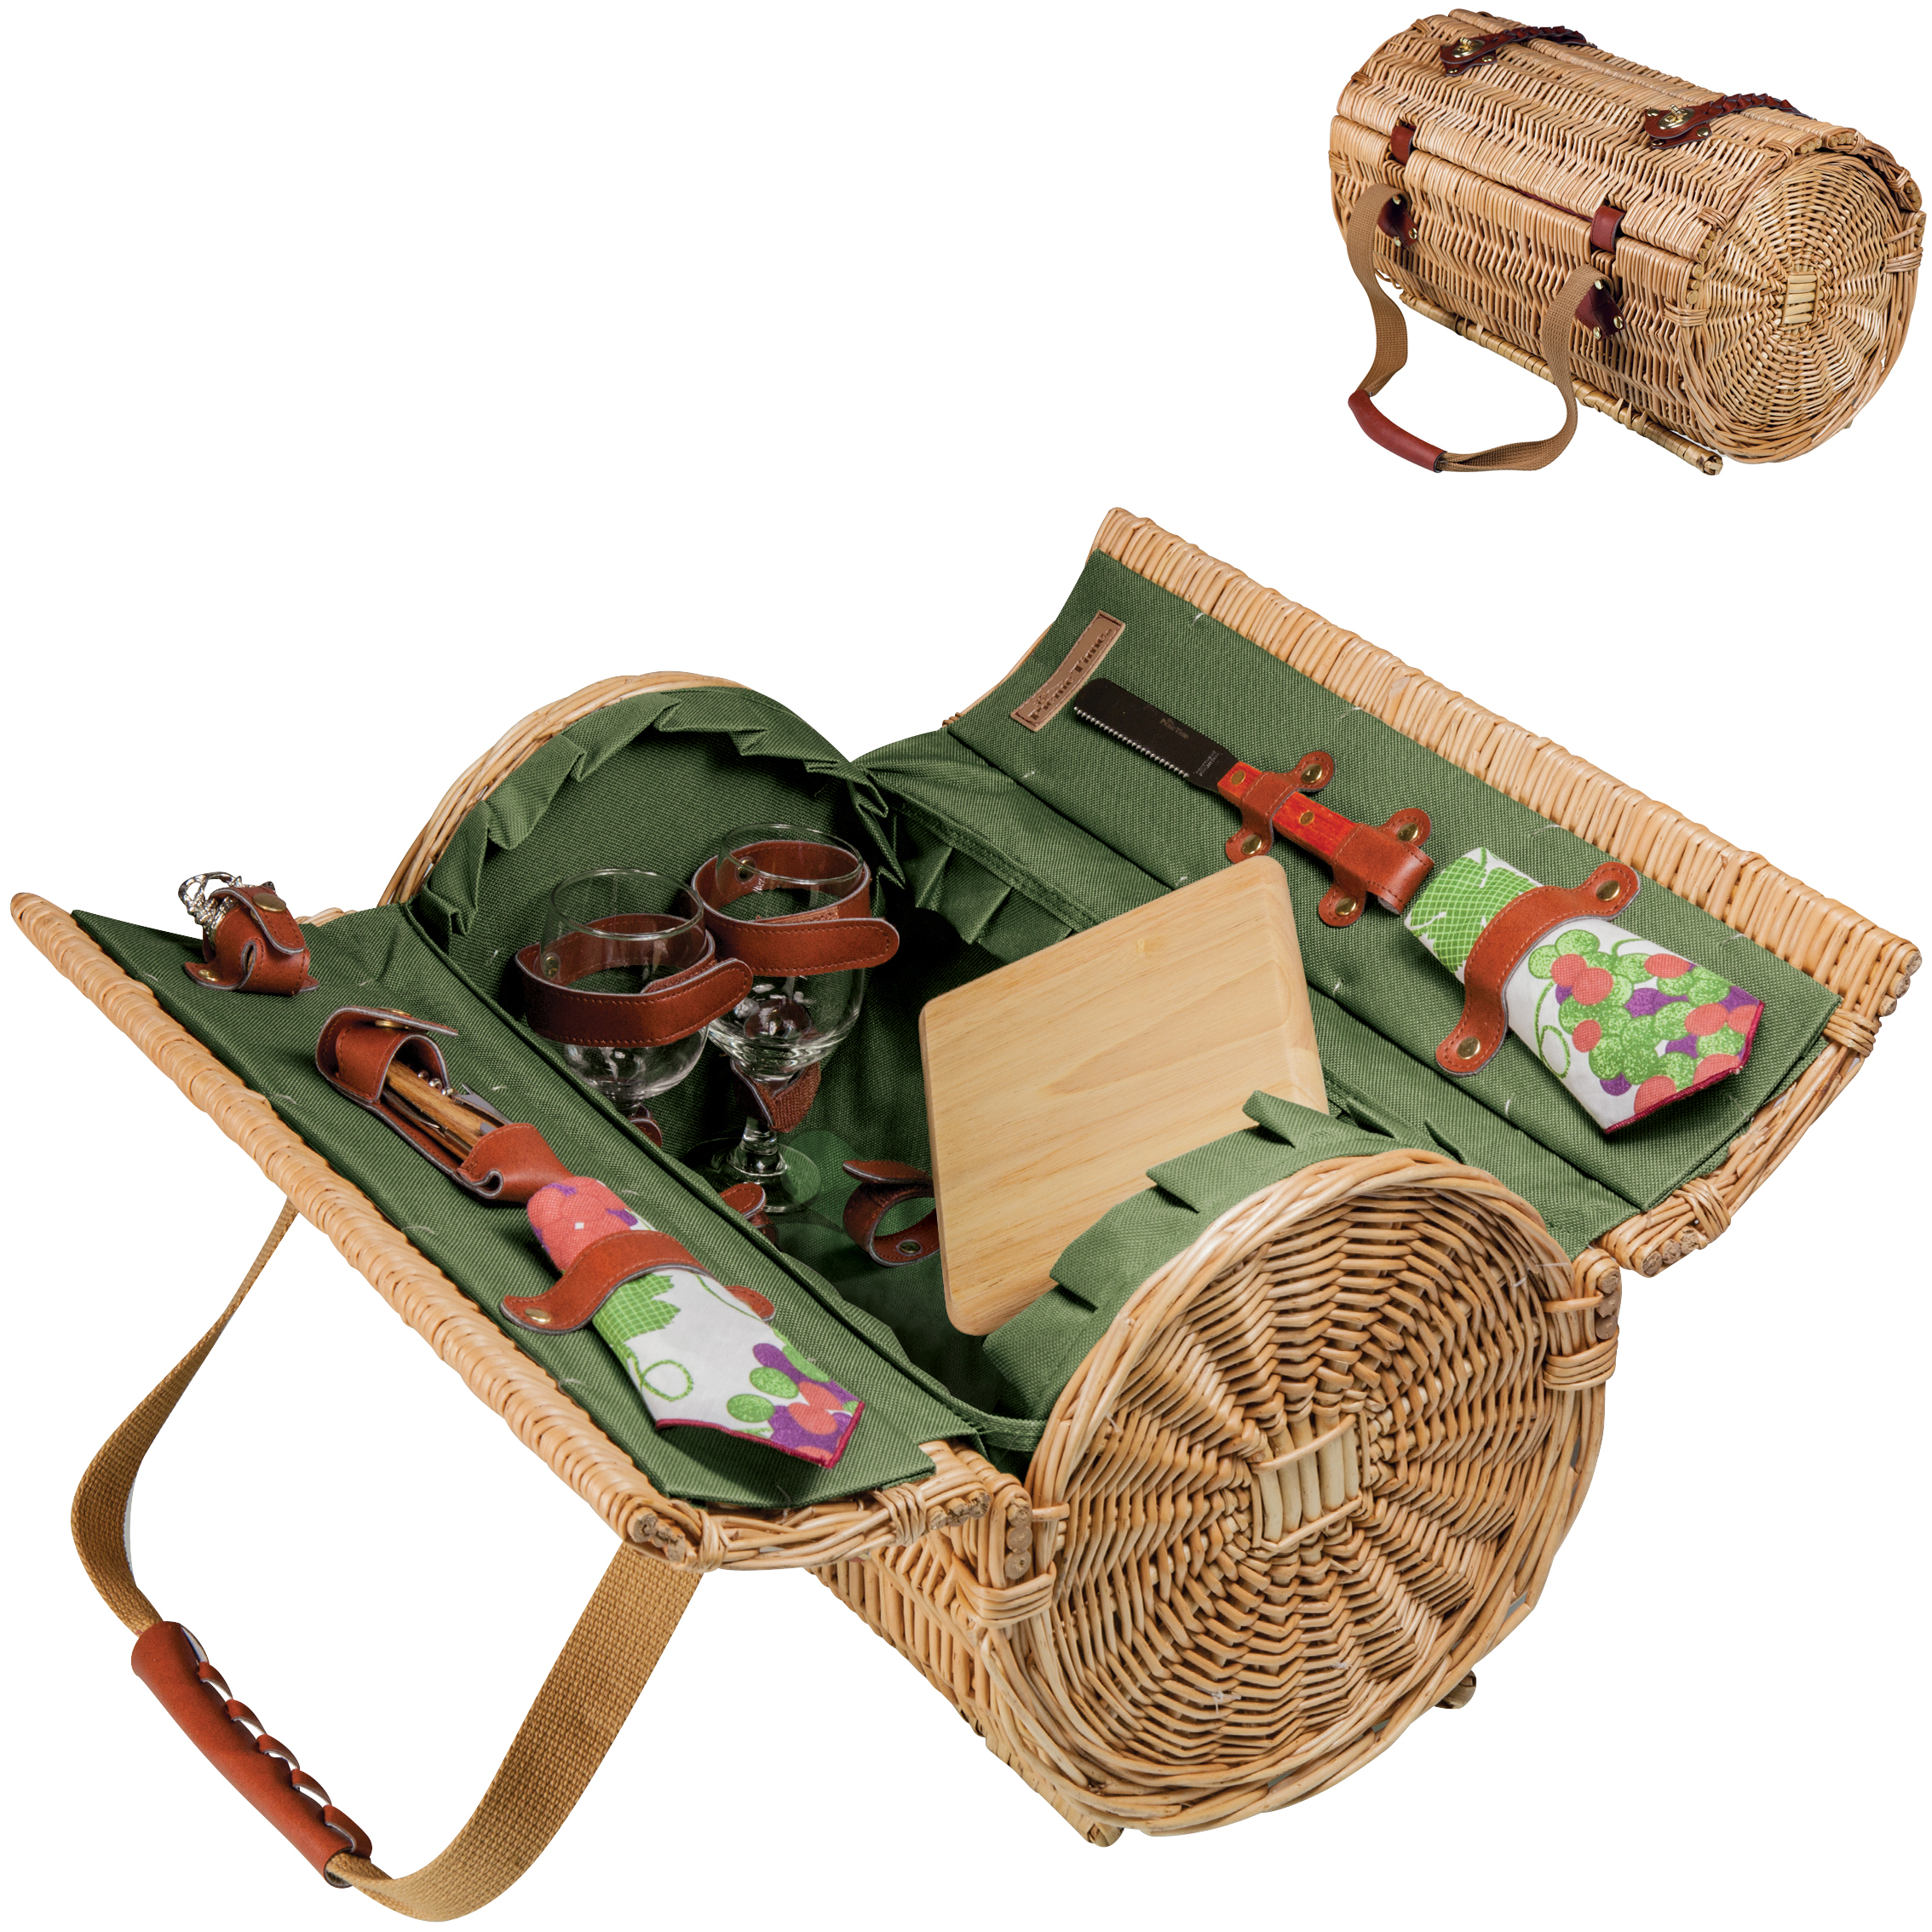 Verona Picnic Basket Set